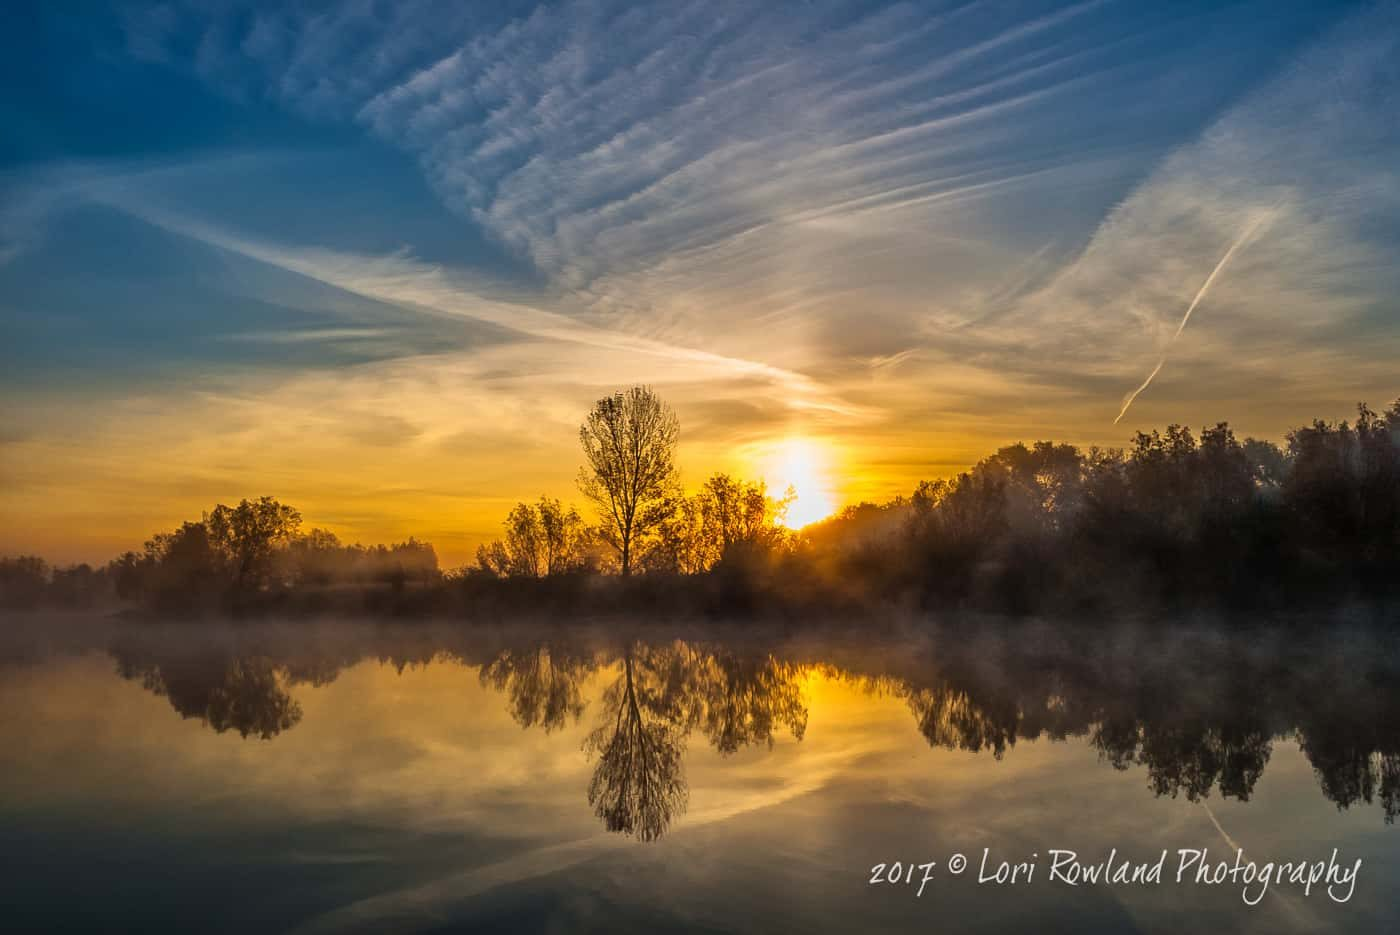 203 Pond, Baker County, Oregon. A beautiful sunrise at the local fishing hole.